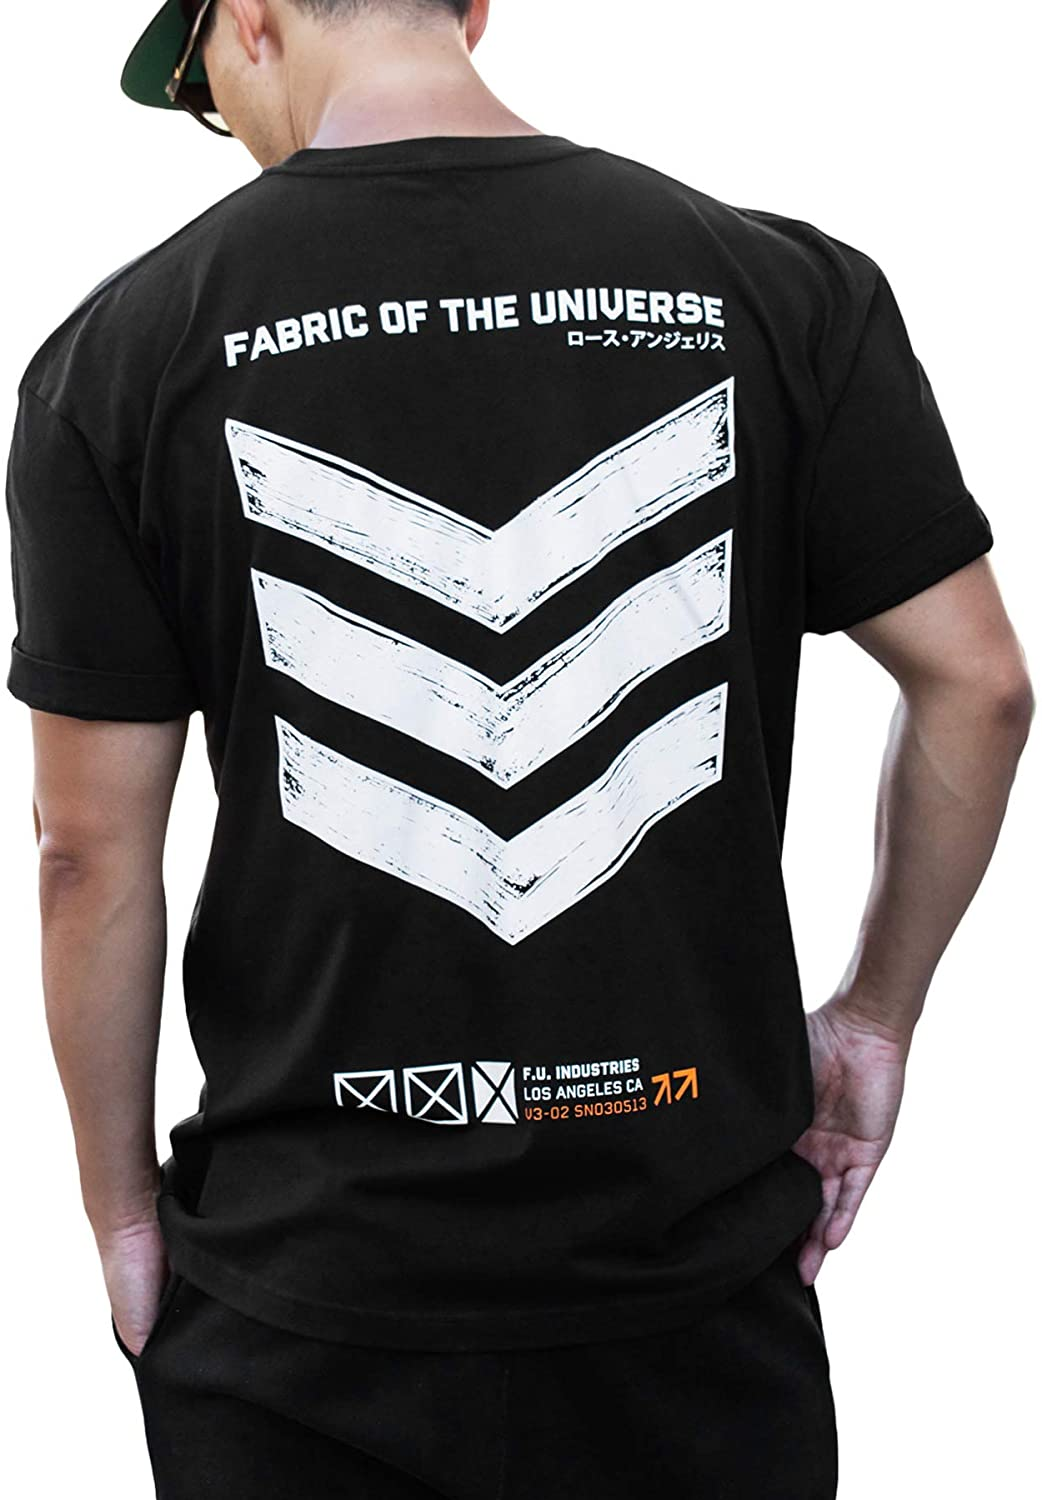 Fabric of the Universe Japanese Streetwear Techwear Graphic Fashion Short Sleeve T-Shirt